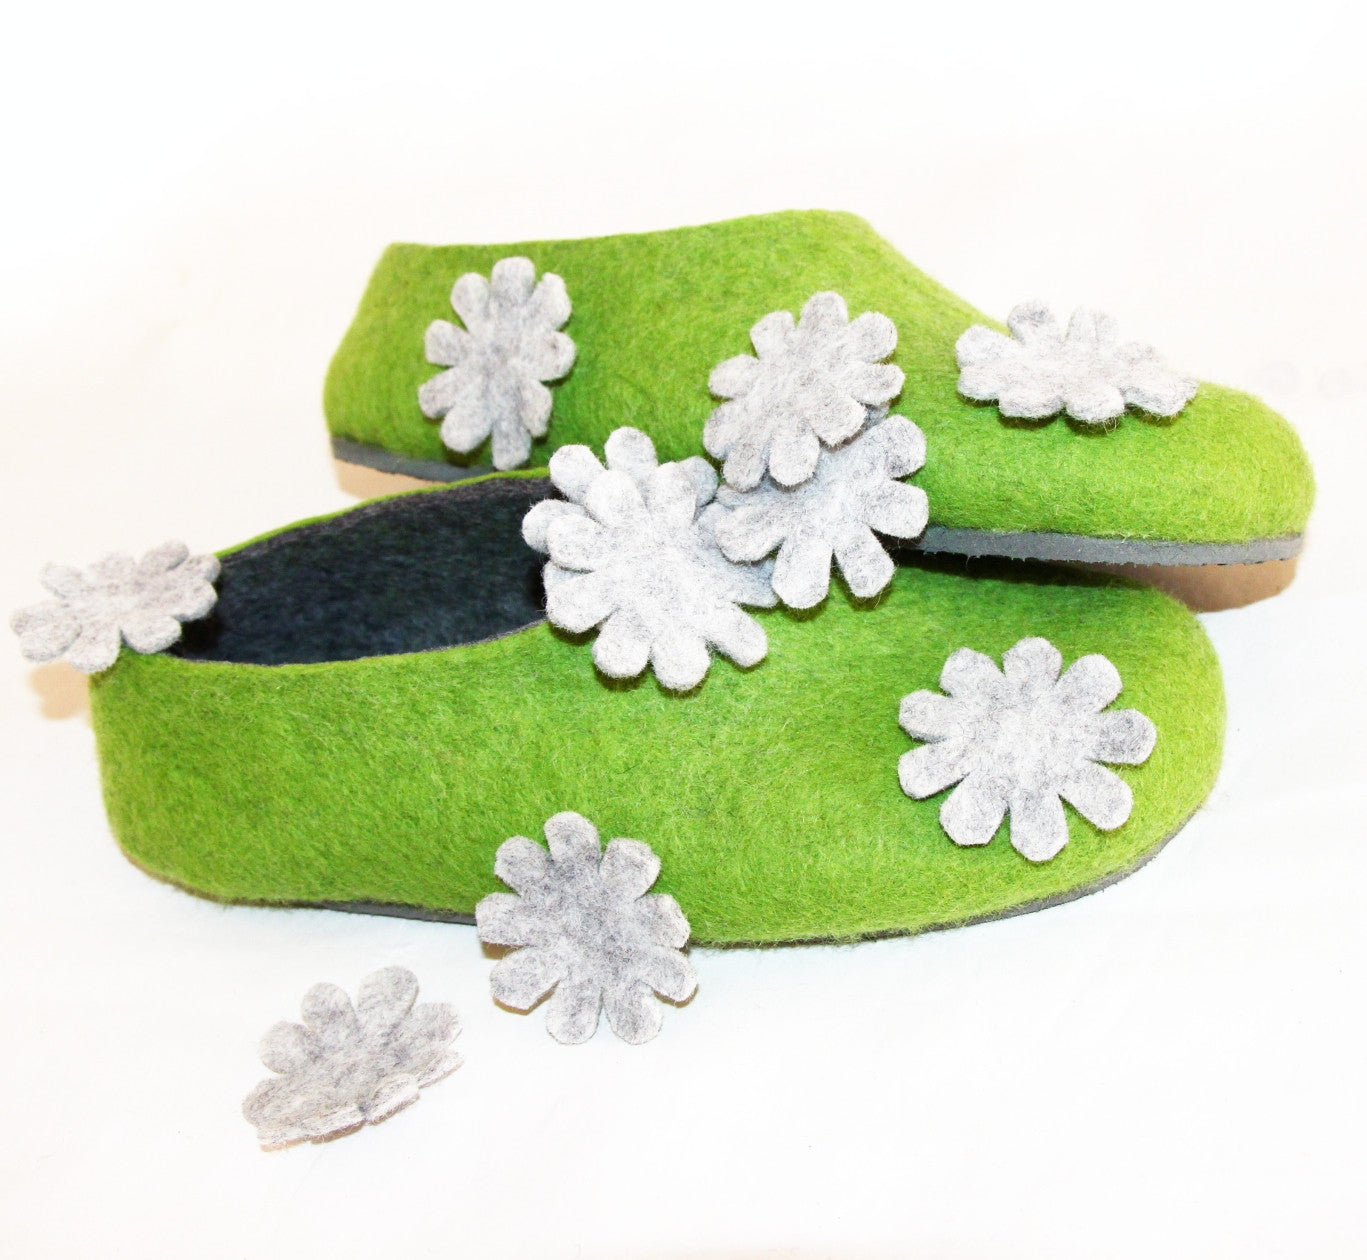 Womens Felt House Shoes Green Bloom Floral Contrast Sole - Wool Walker  - 7